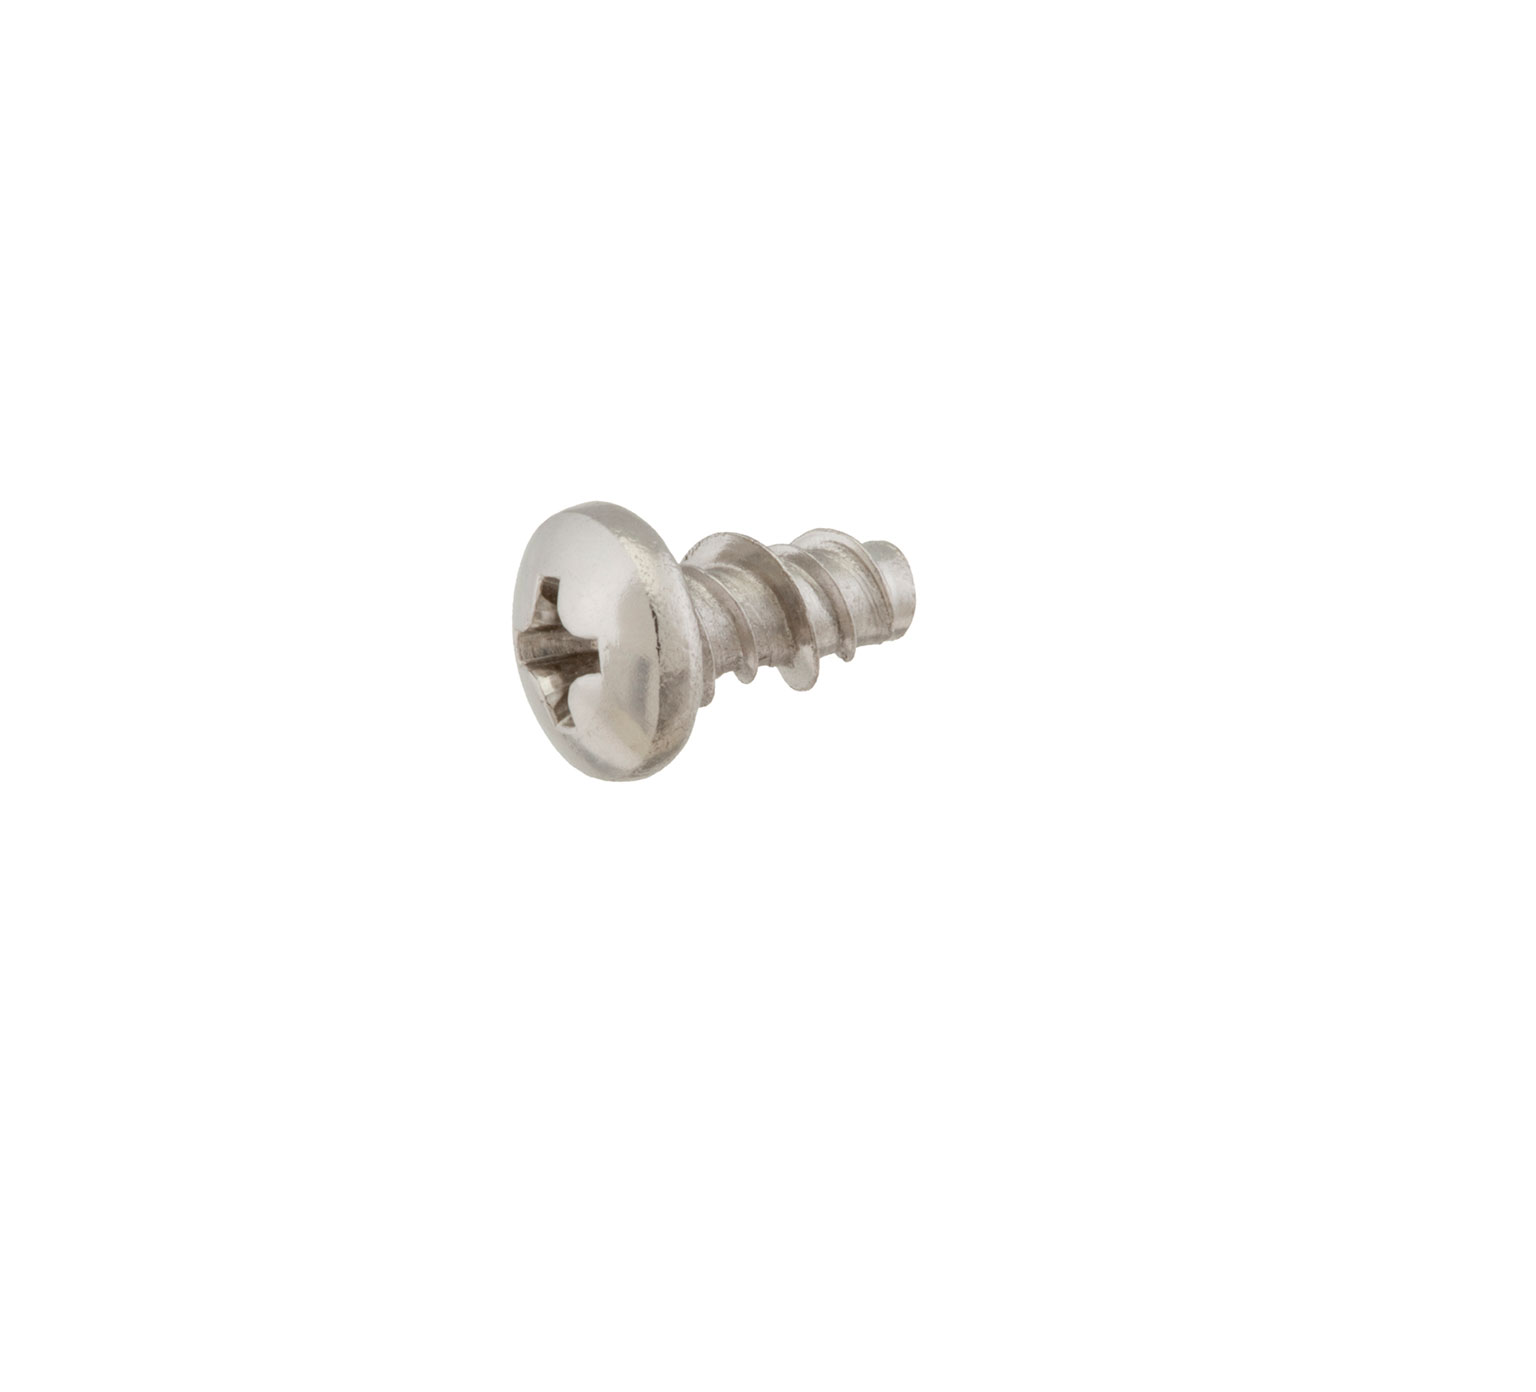 606915 Stainless Steel Phillips Pan Screw - 0.32 in alt 1